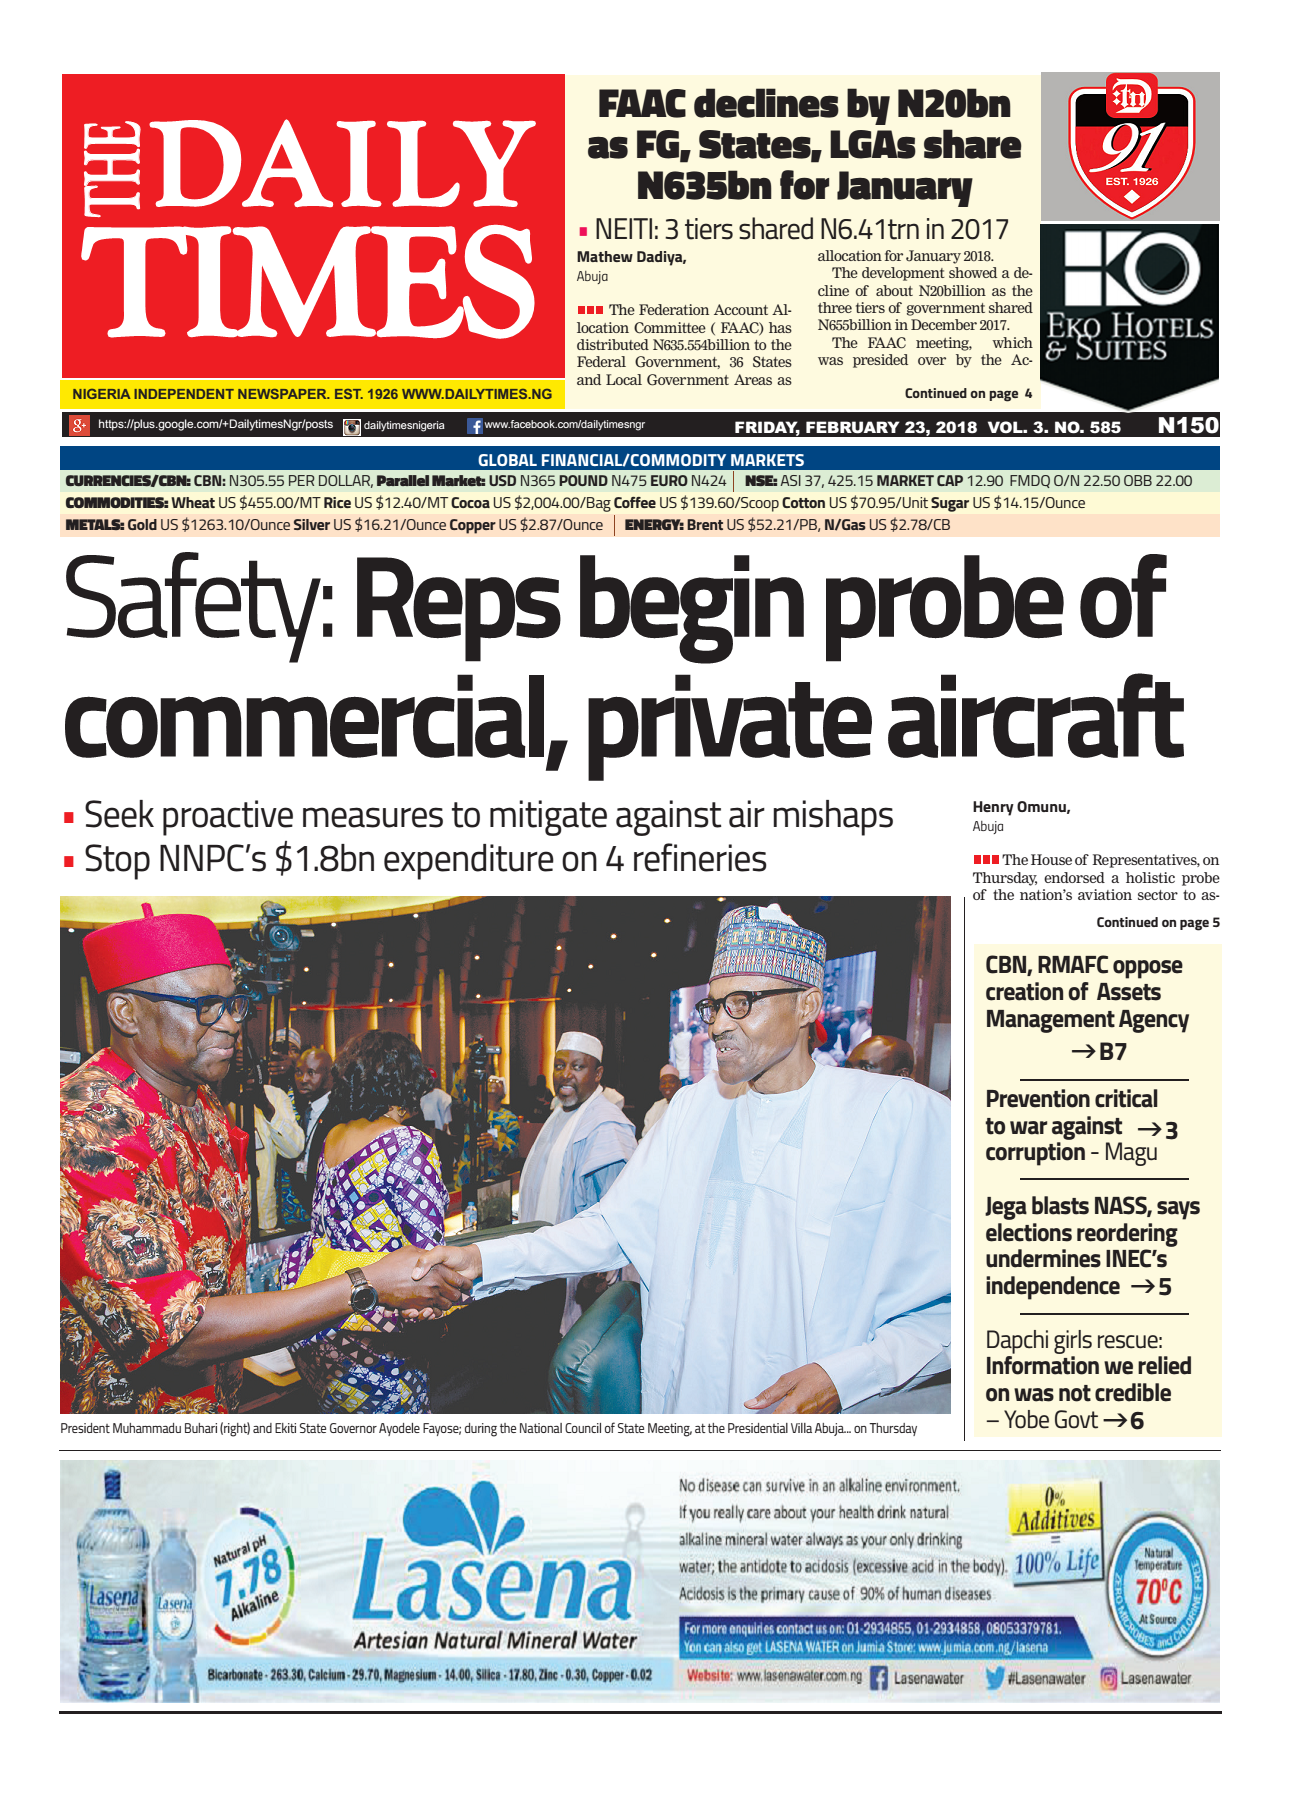 Daily Times Newspaper, Friday, February 23, 2018